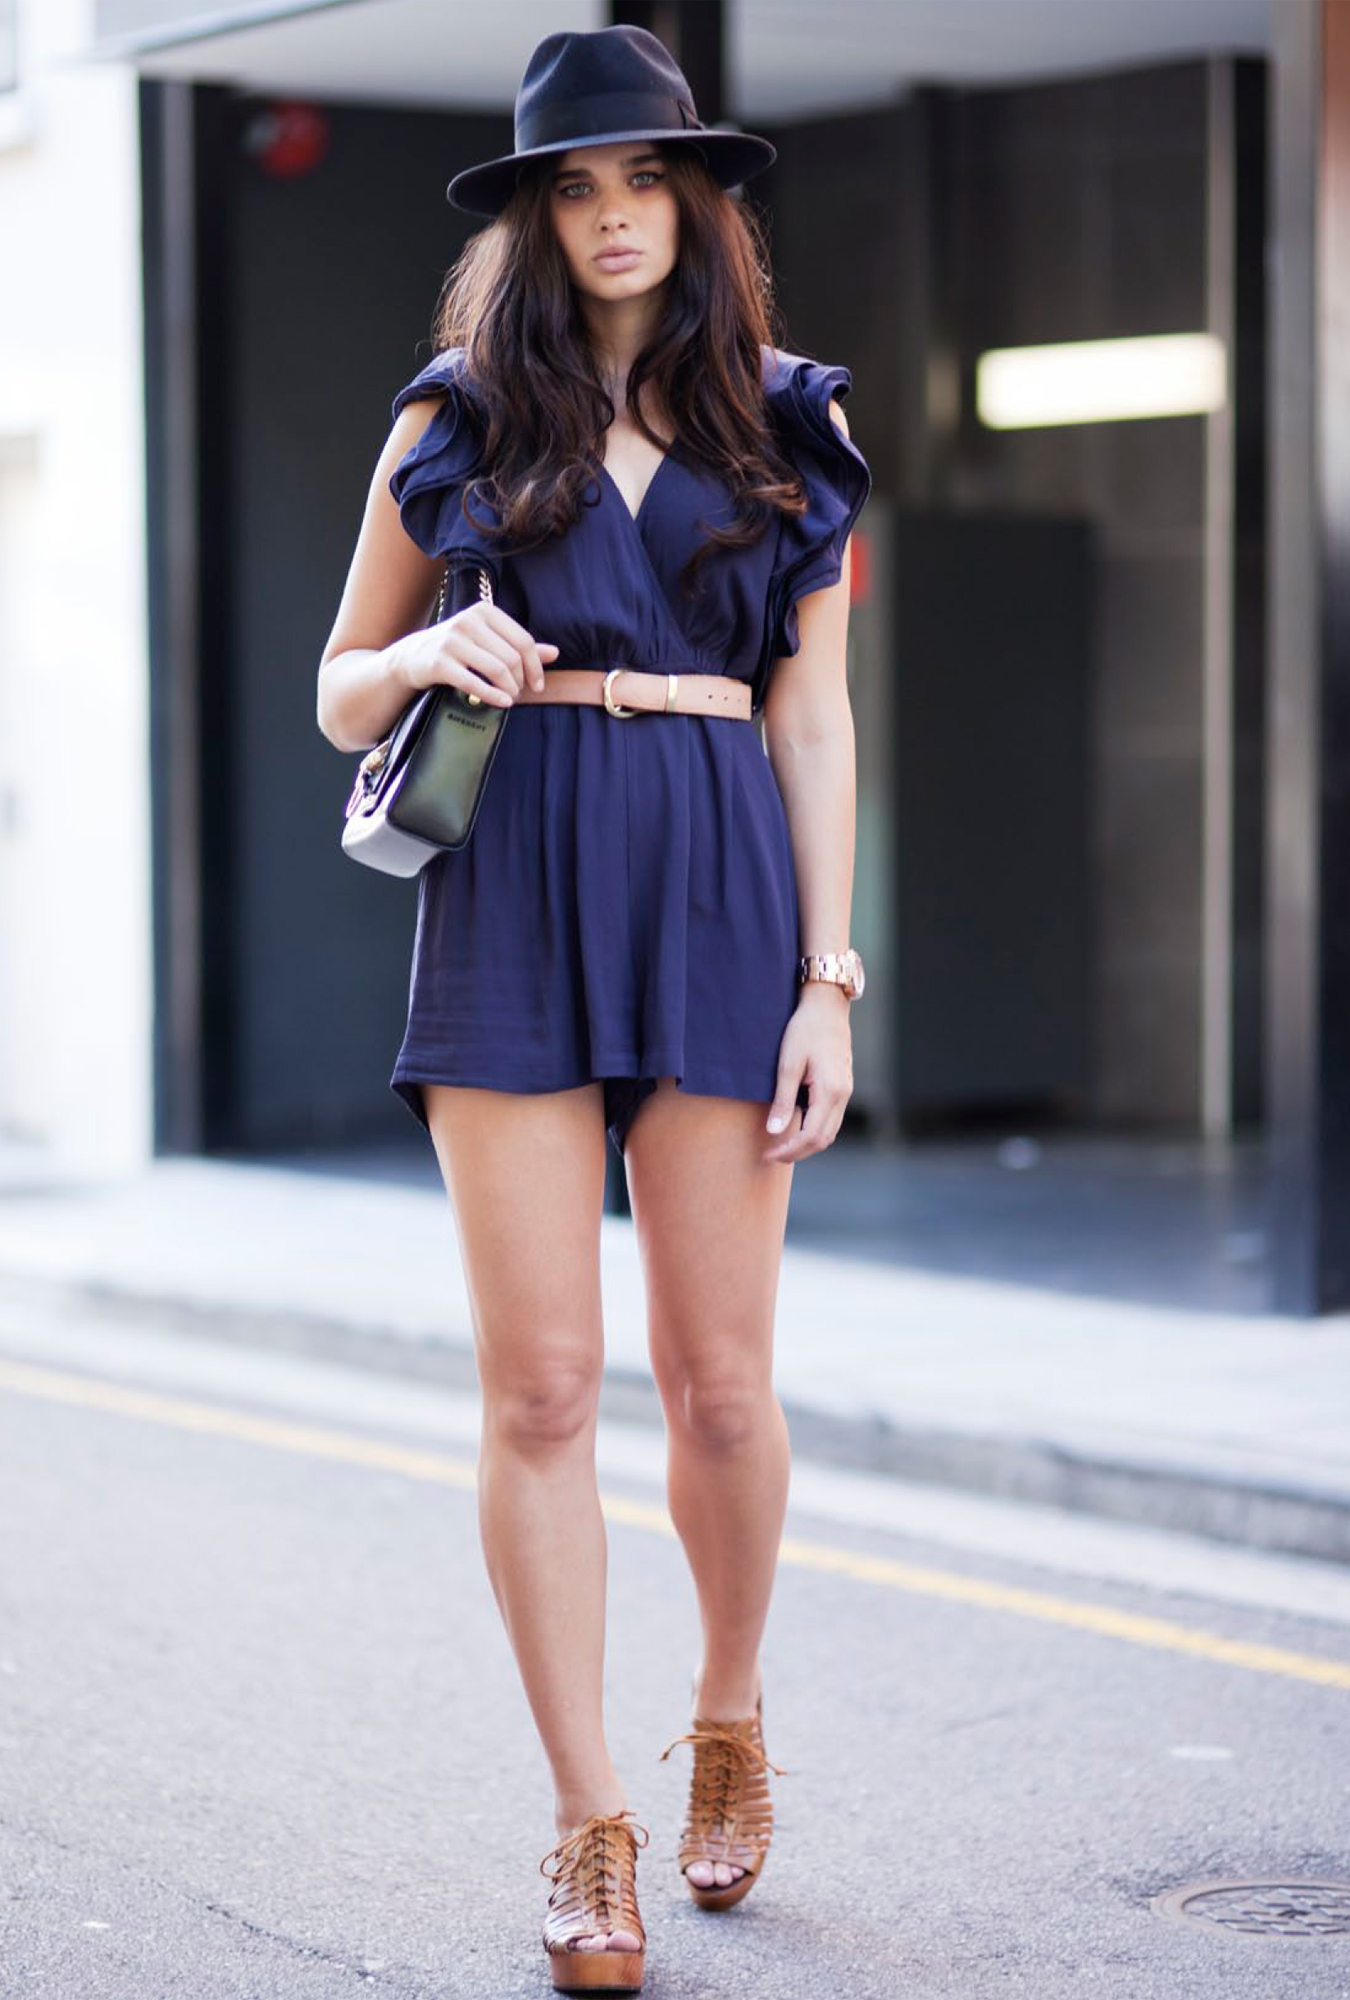 cameo-street-style-lb-email-dragged-2